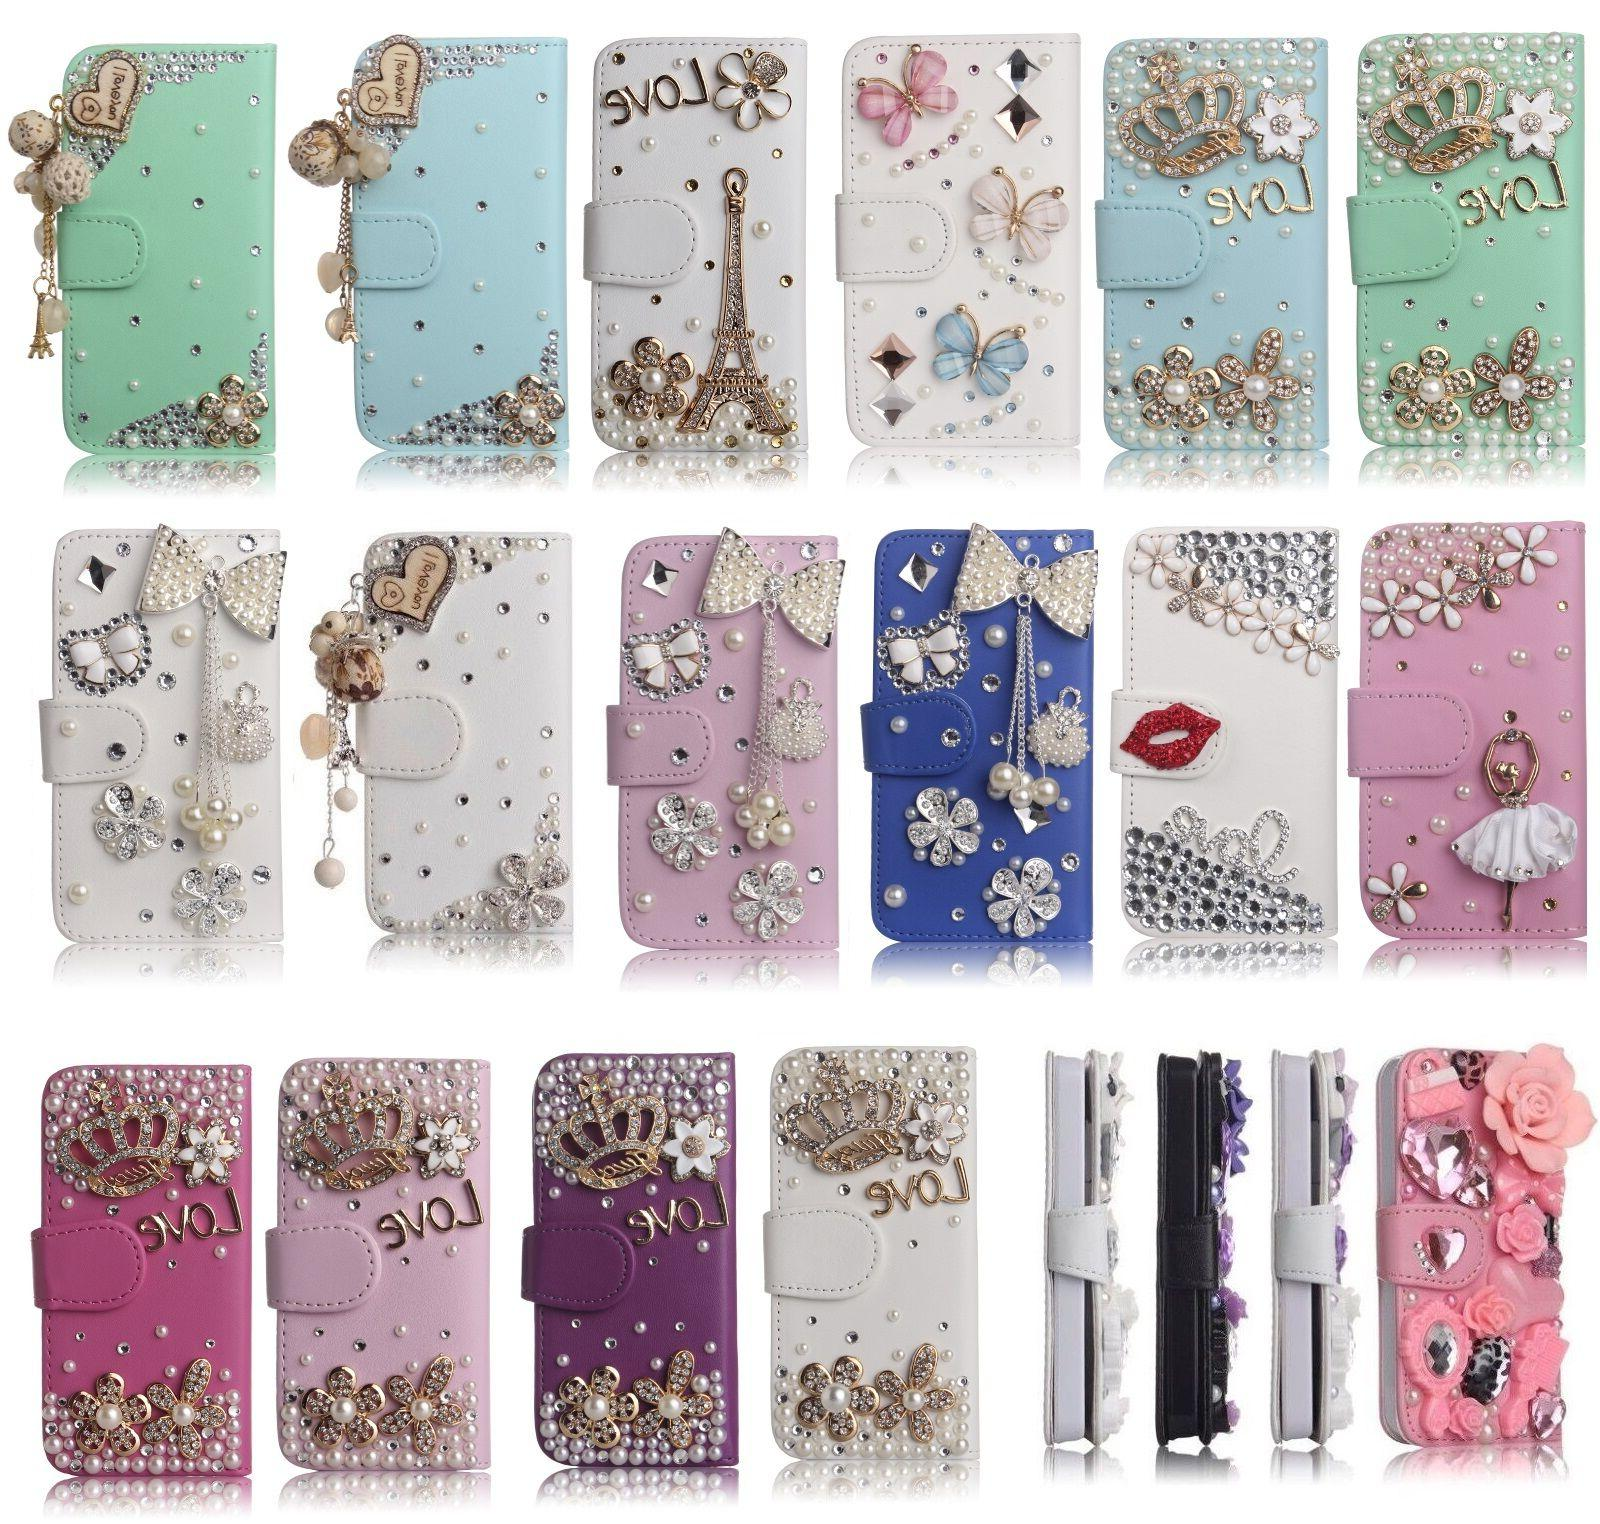 3D Bling Cases Crystal Rhinestone Luxury Bling Wallet Design